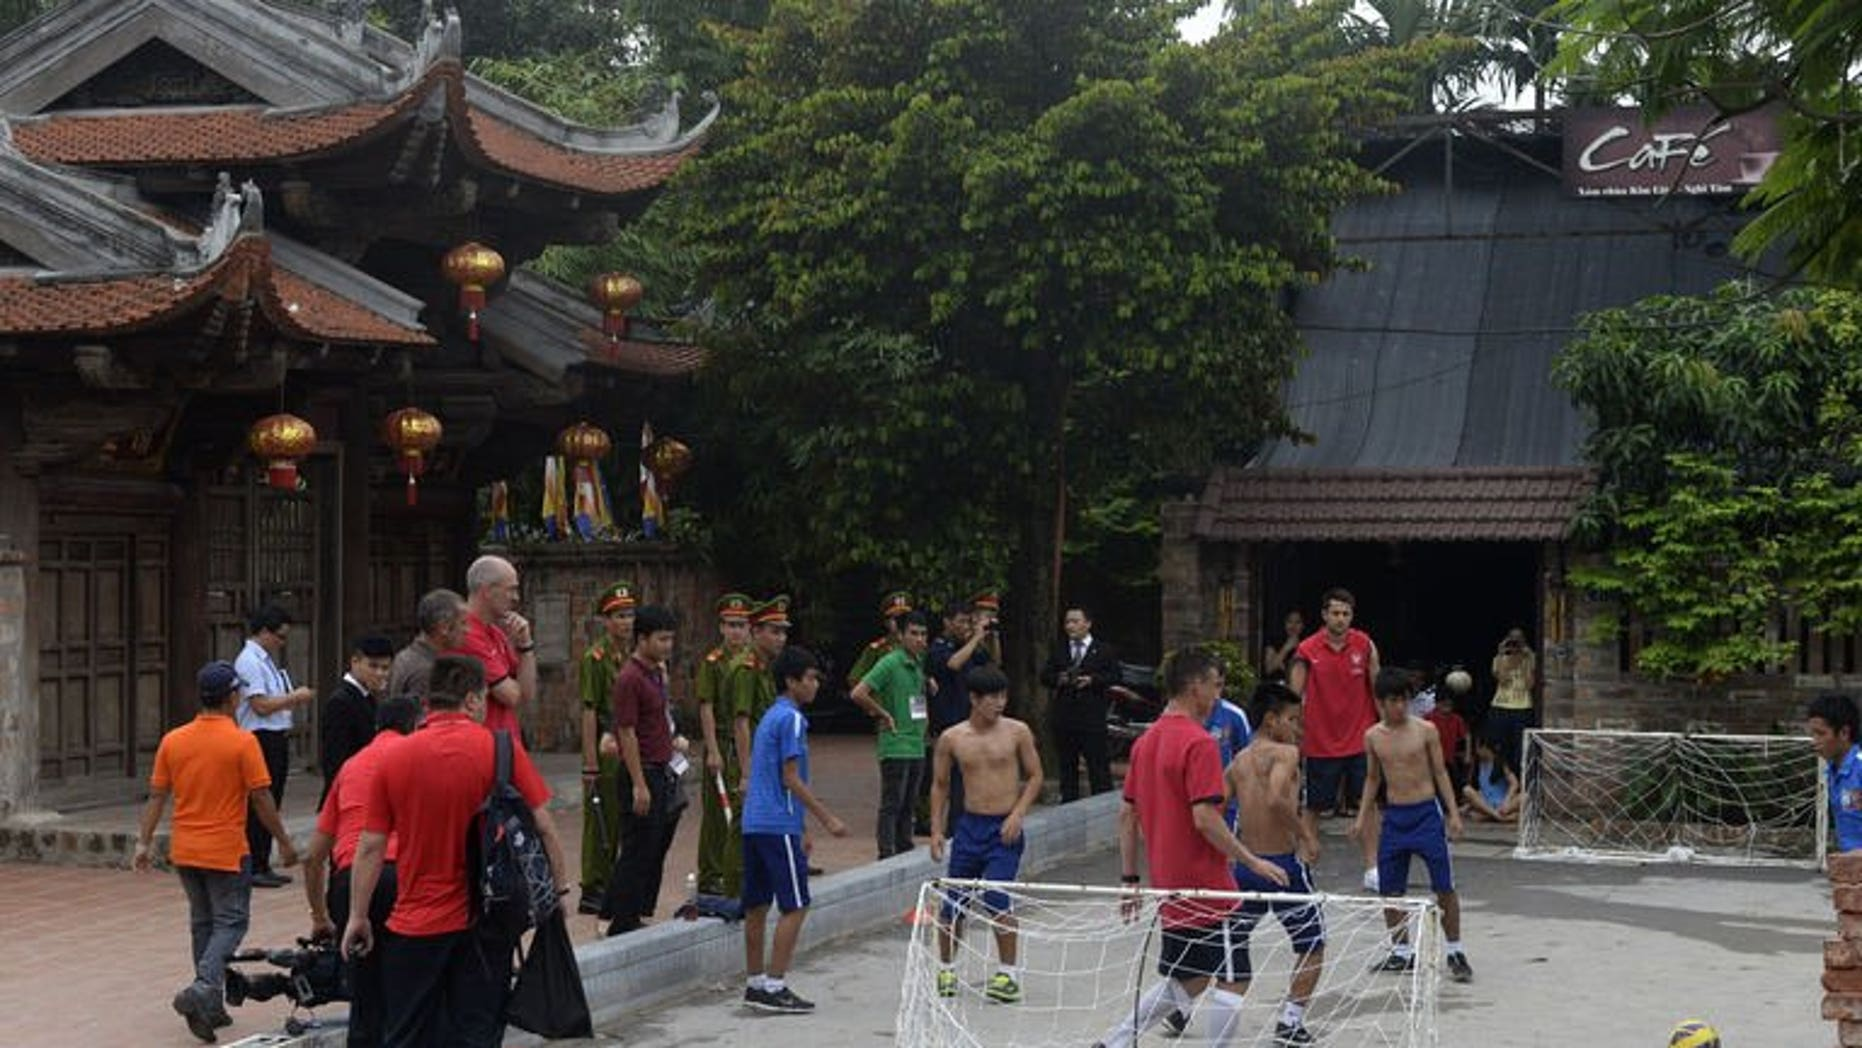 Arsenal football players Lukasz Fabianski (front C) and Laurent Koscielny (back C) play mini-football with local players from HAGL-Arsenal-JMG football academy in front of a pagoda in Hanoi on July 16, 2013.